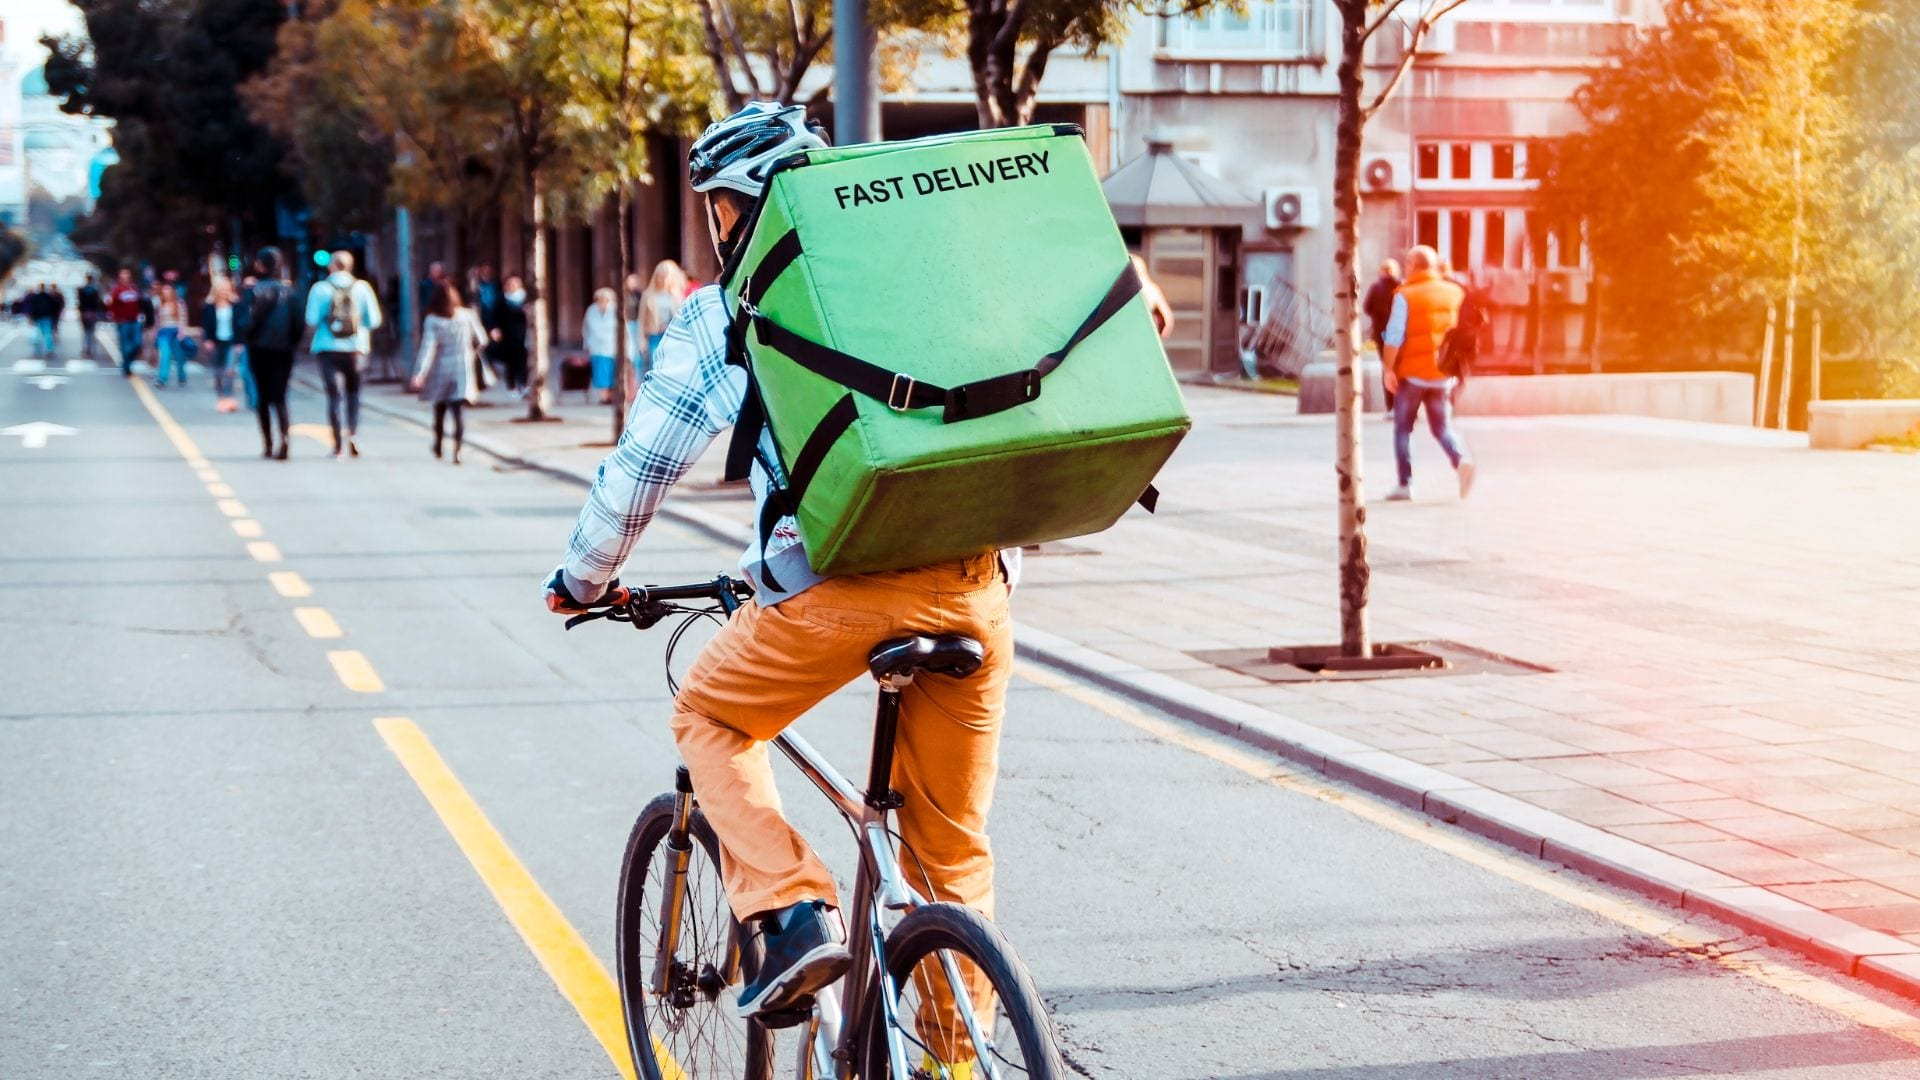 jobs in the gig economy